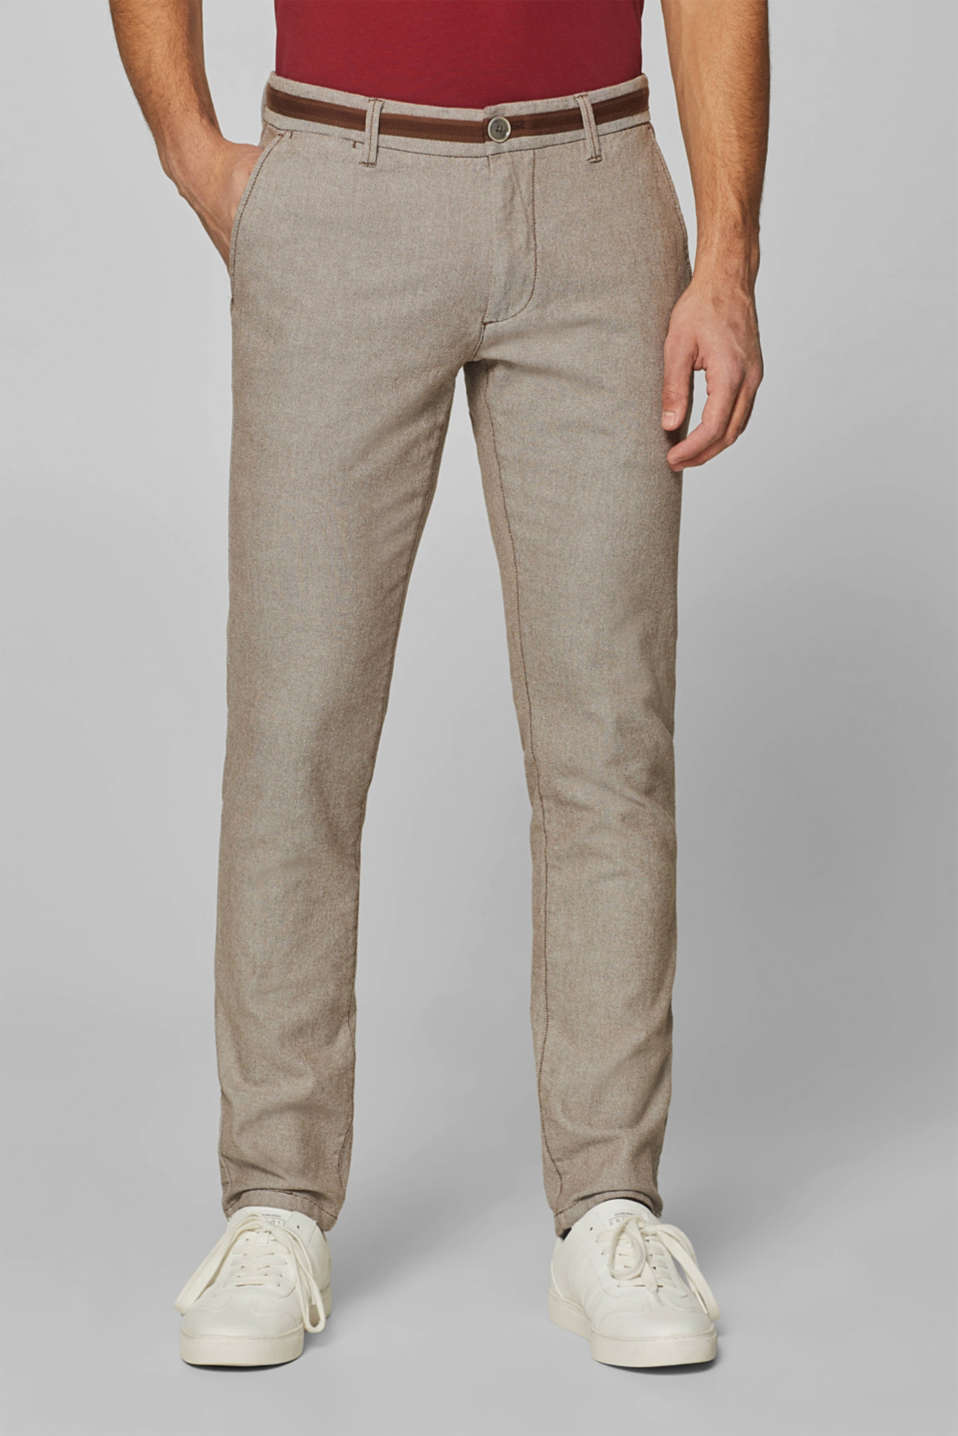 Esprit - Two-tone trousers with accent stripes